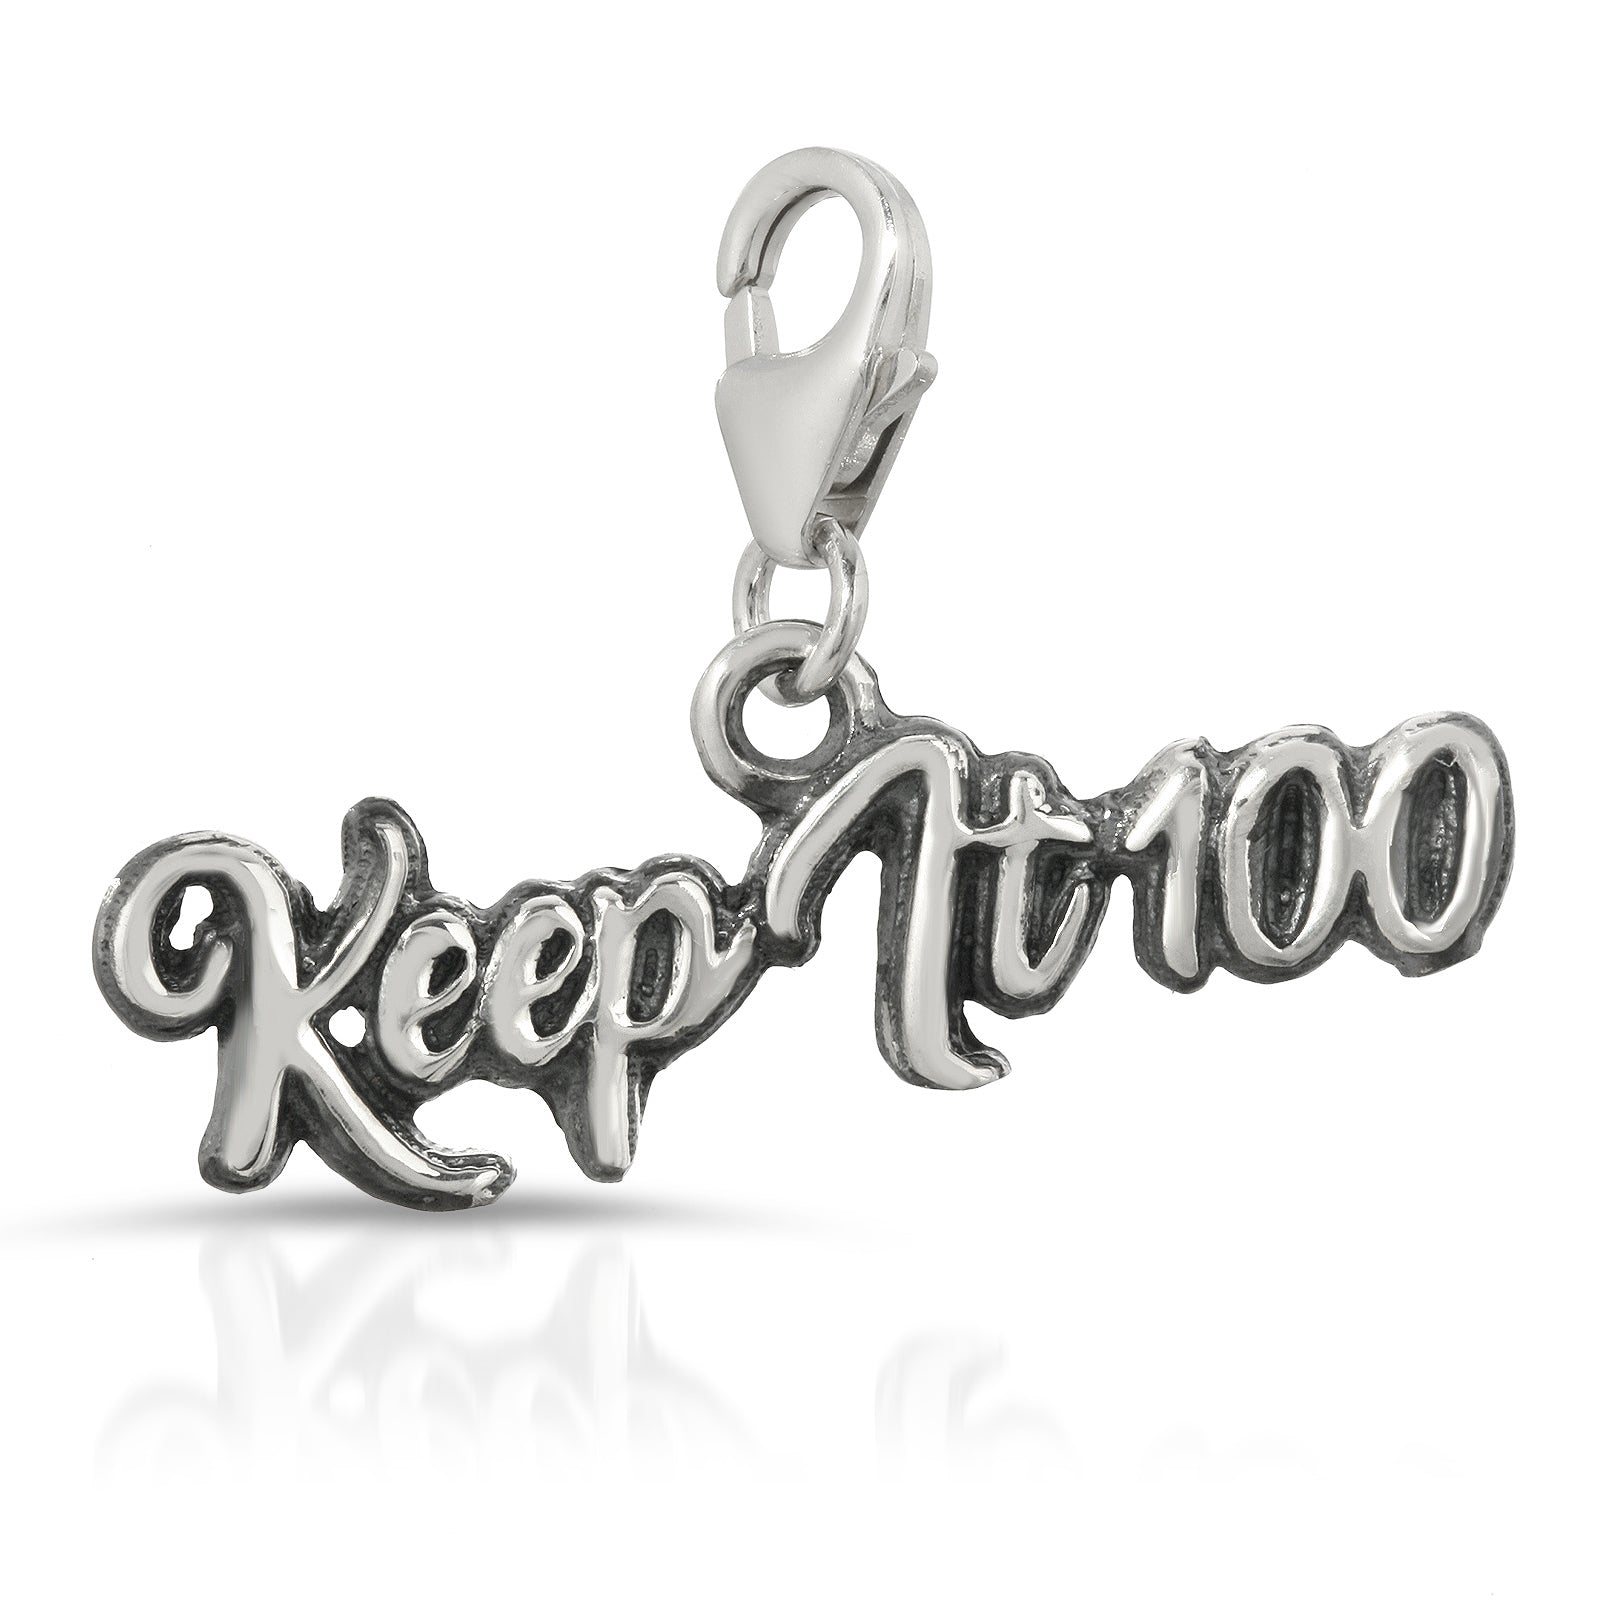 Keep It 100 Charm - The W Brothers